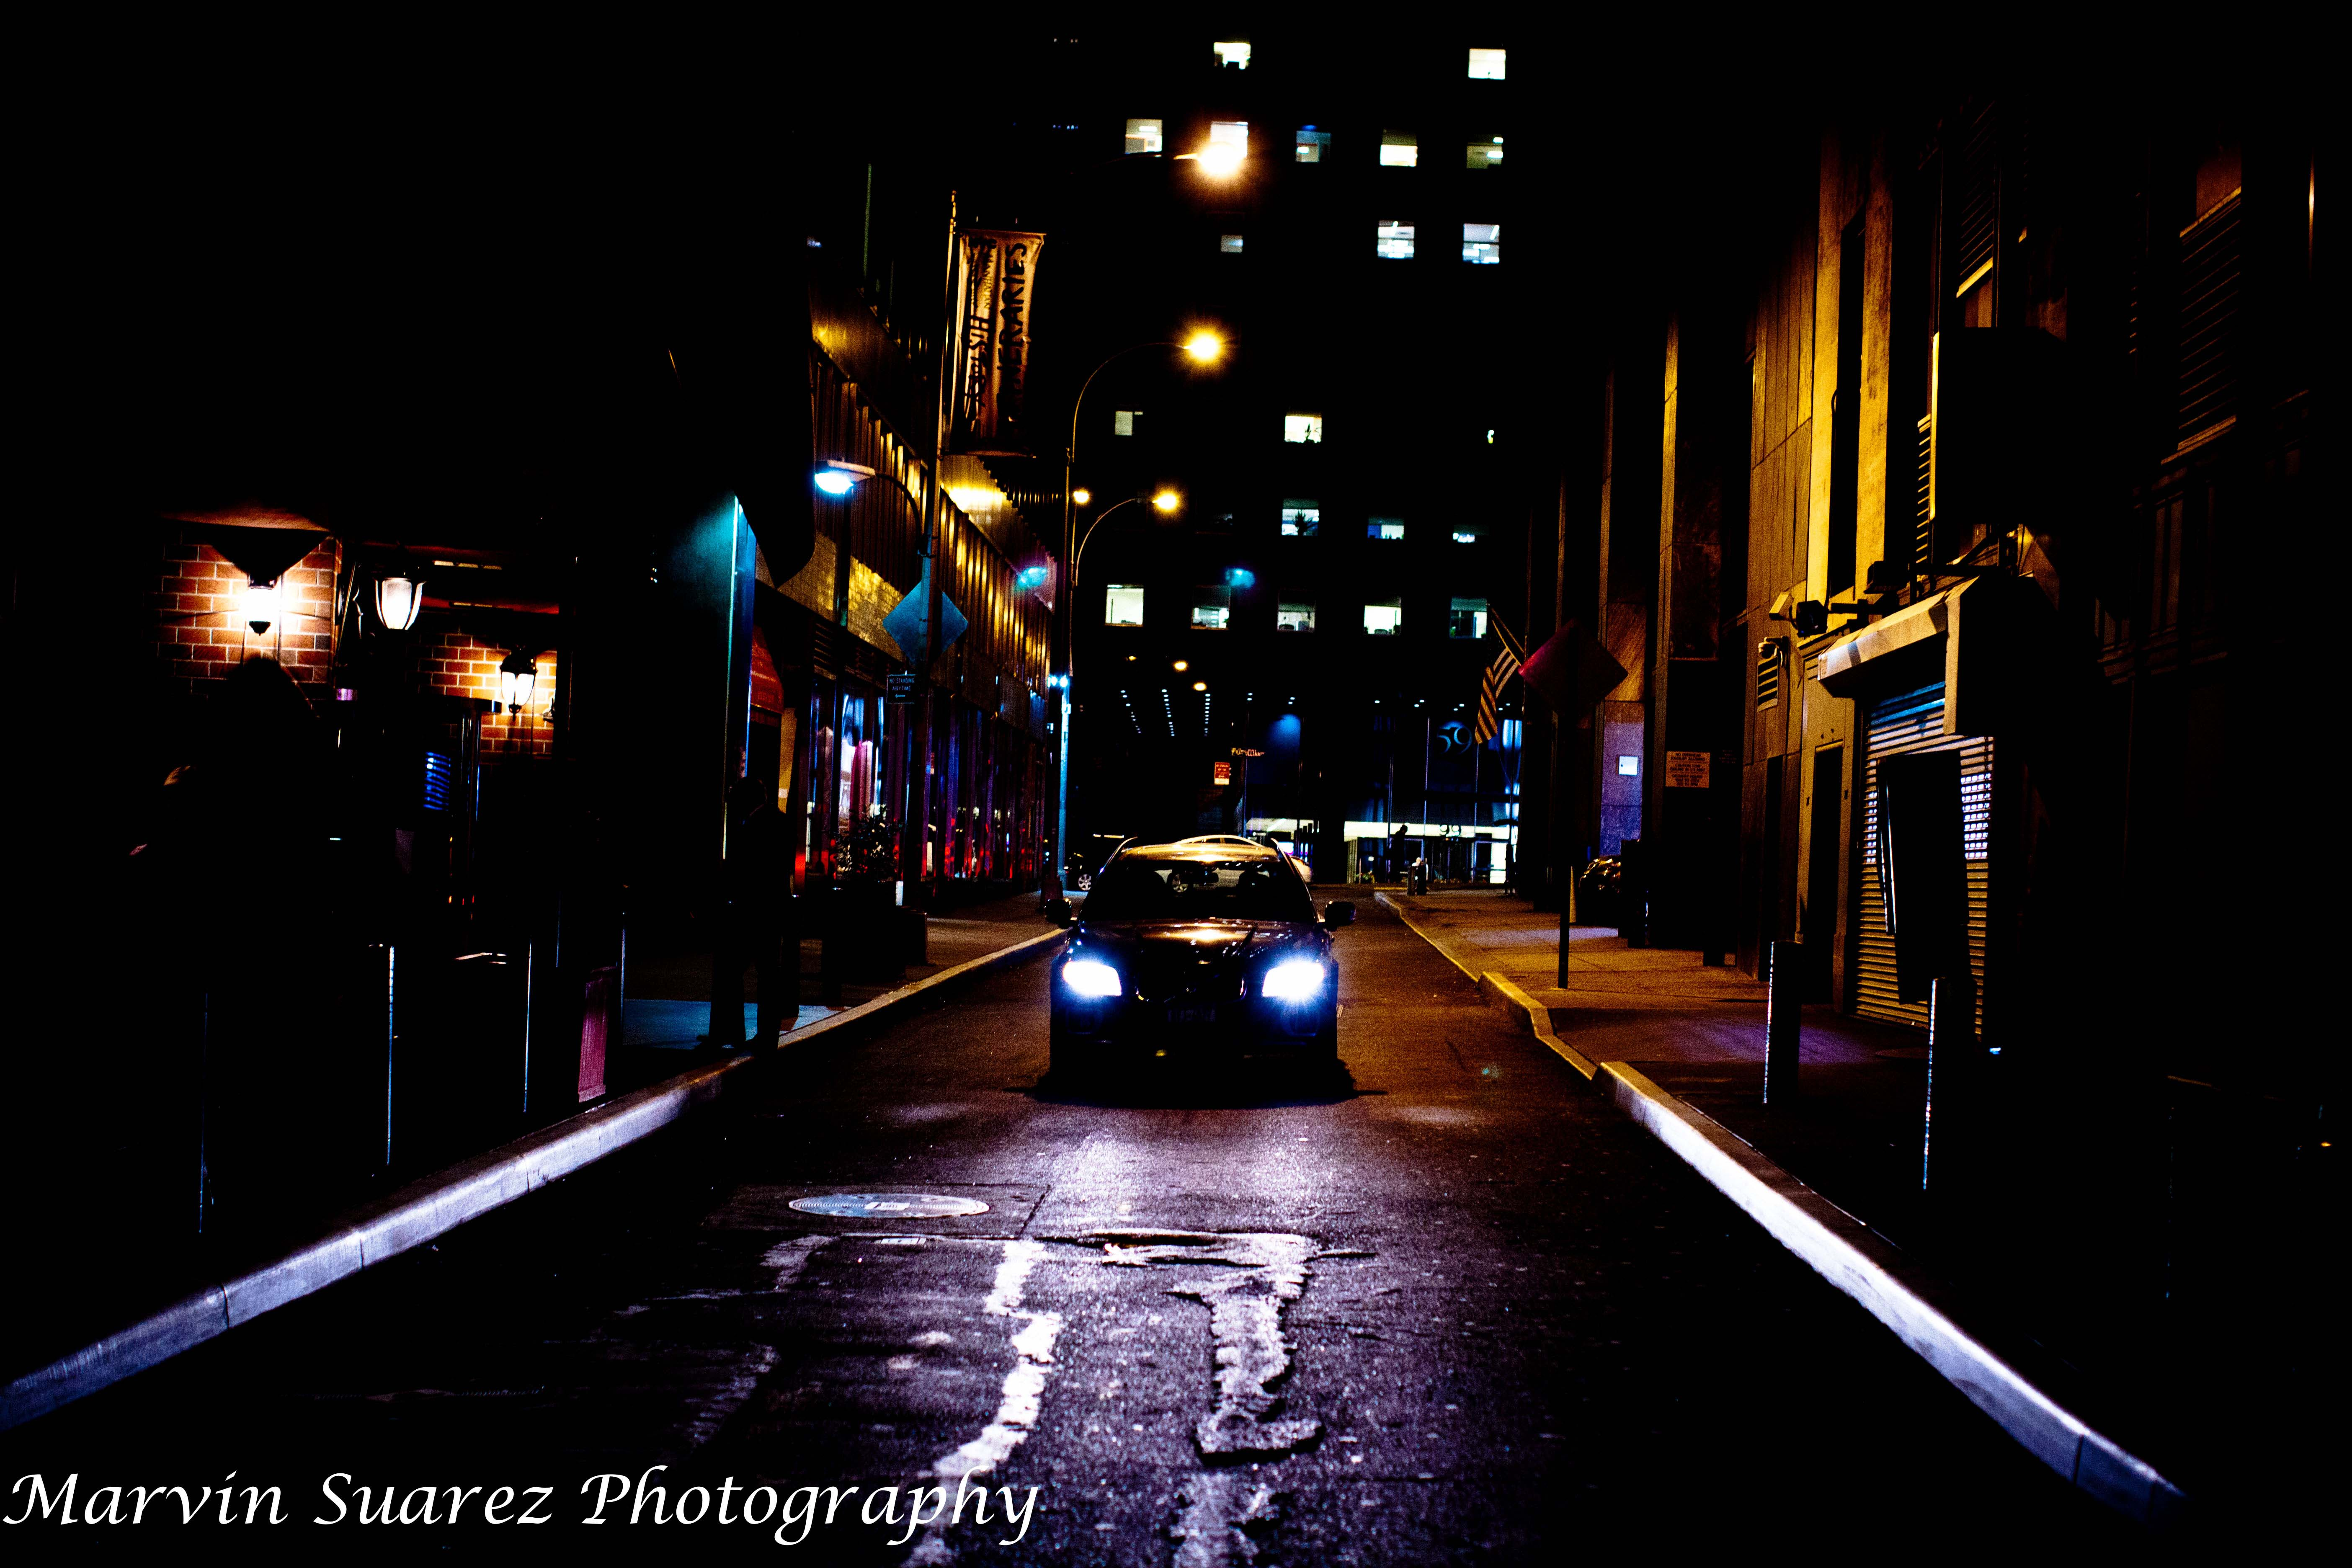 ghetto street backgrounds - photo #30